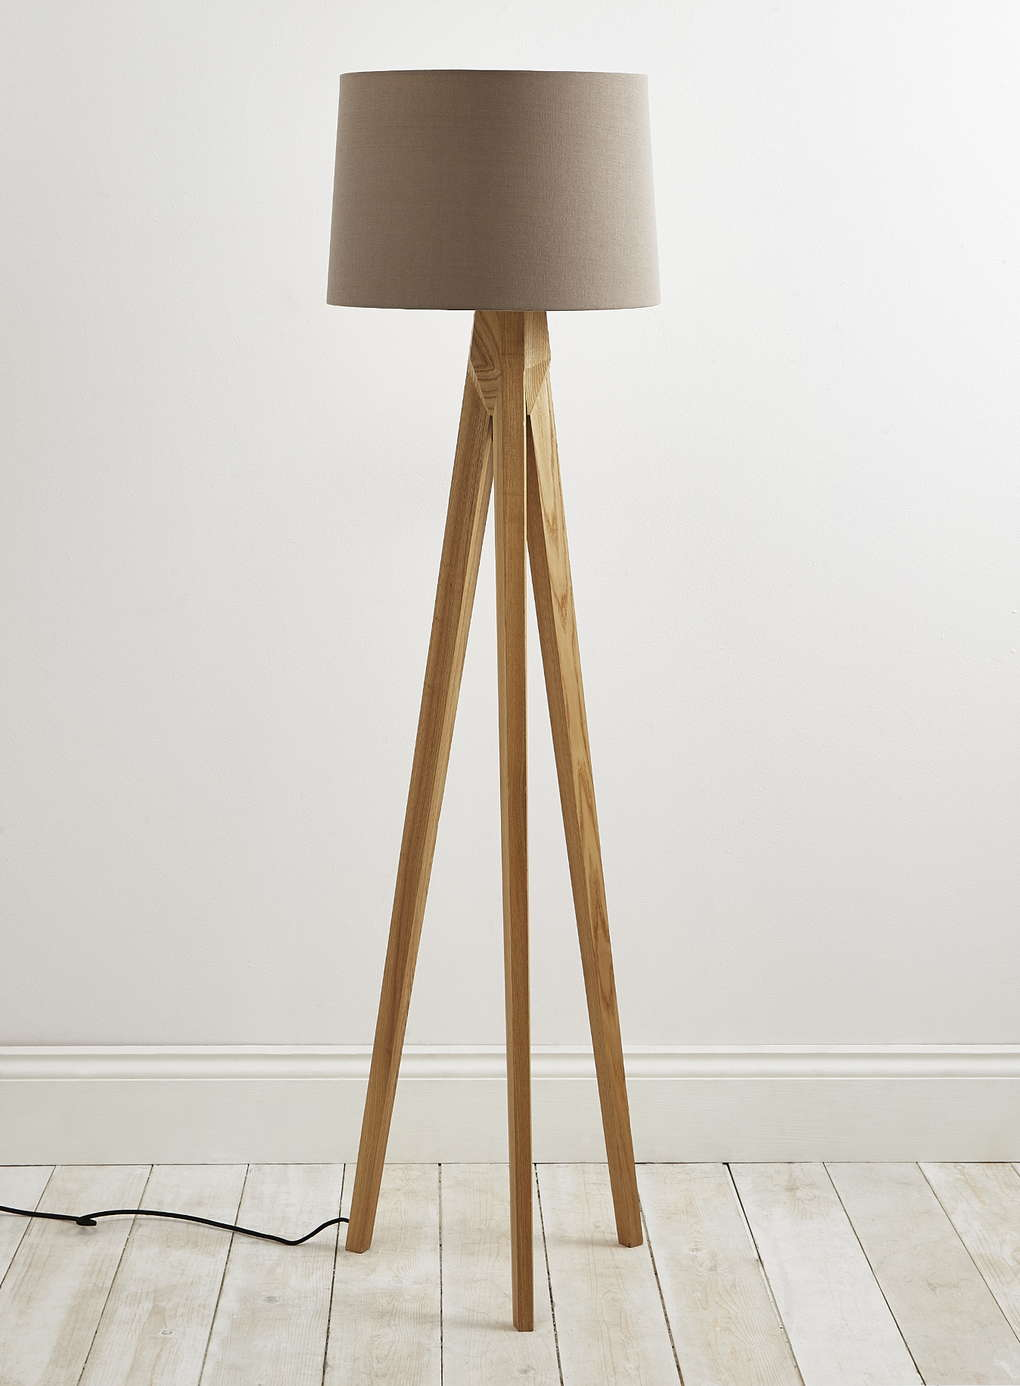 Awesome Tripod Lamp for Interior Lighting Ideas: Tripod Lamps Floor | Tripod Lamp | Floor Lamp Grey